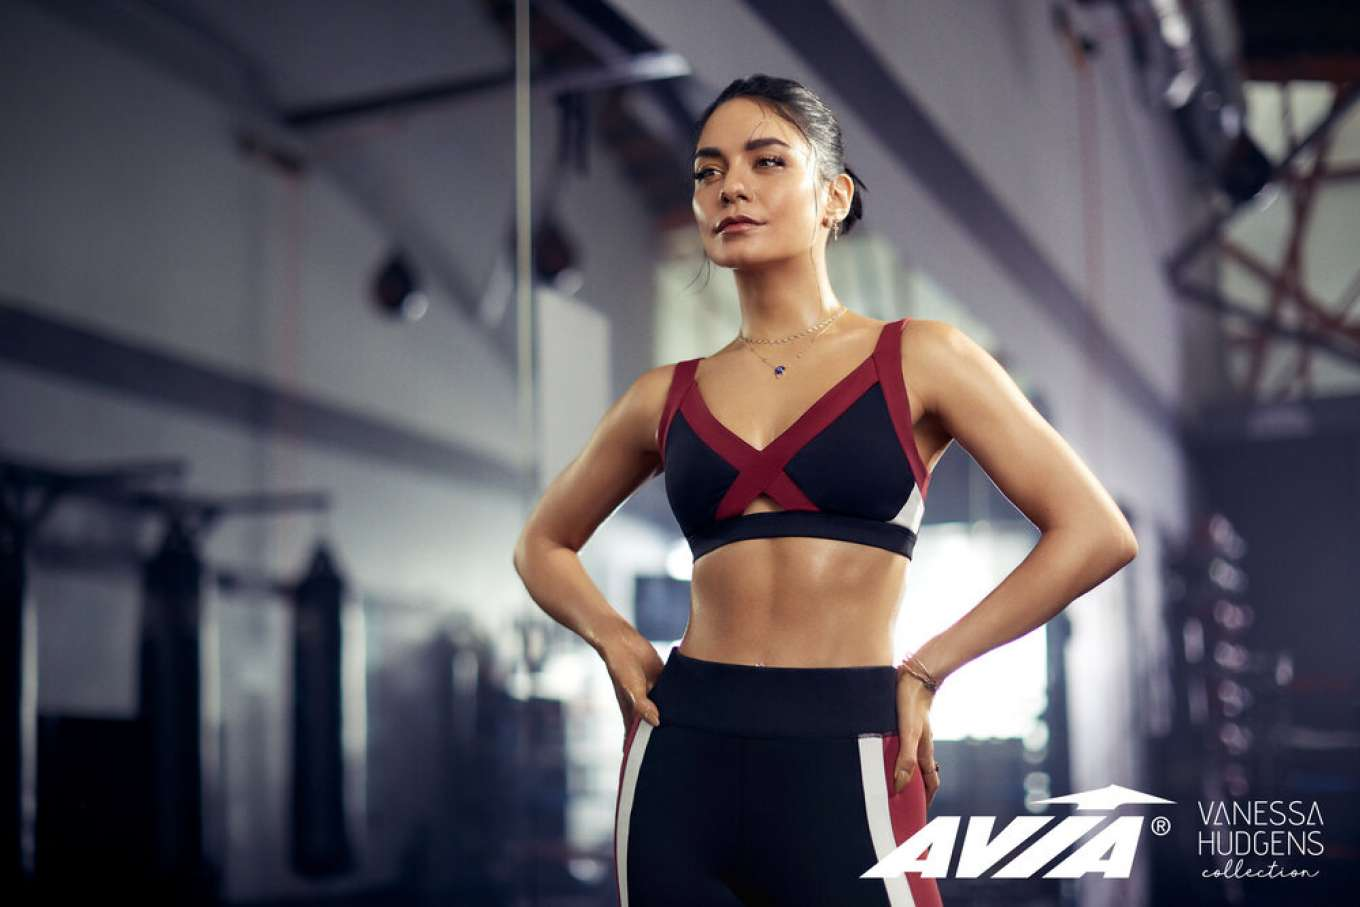 Vanessa Hudgens 2019 : Vanessa Hudgens – Vanessa Hudgens Collection x Avia Fitness 2019-12